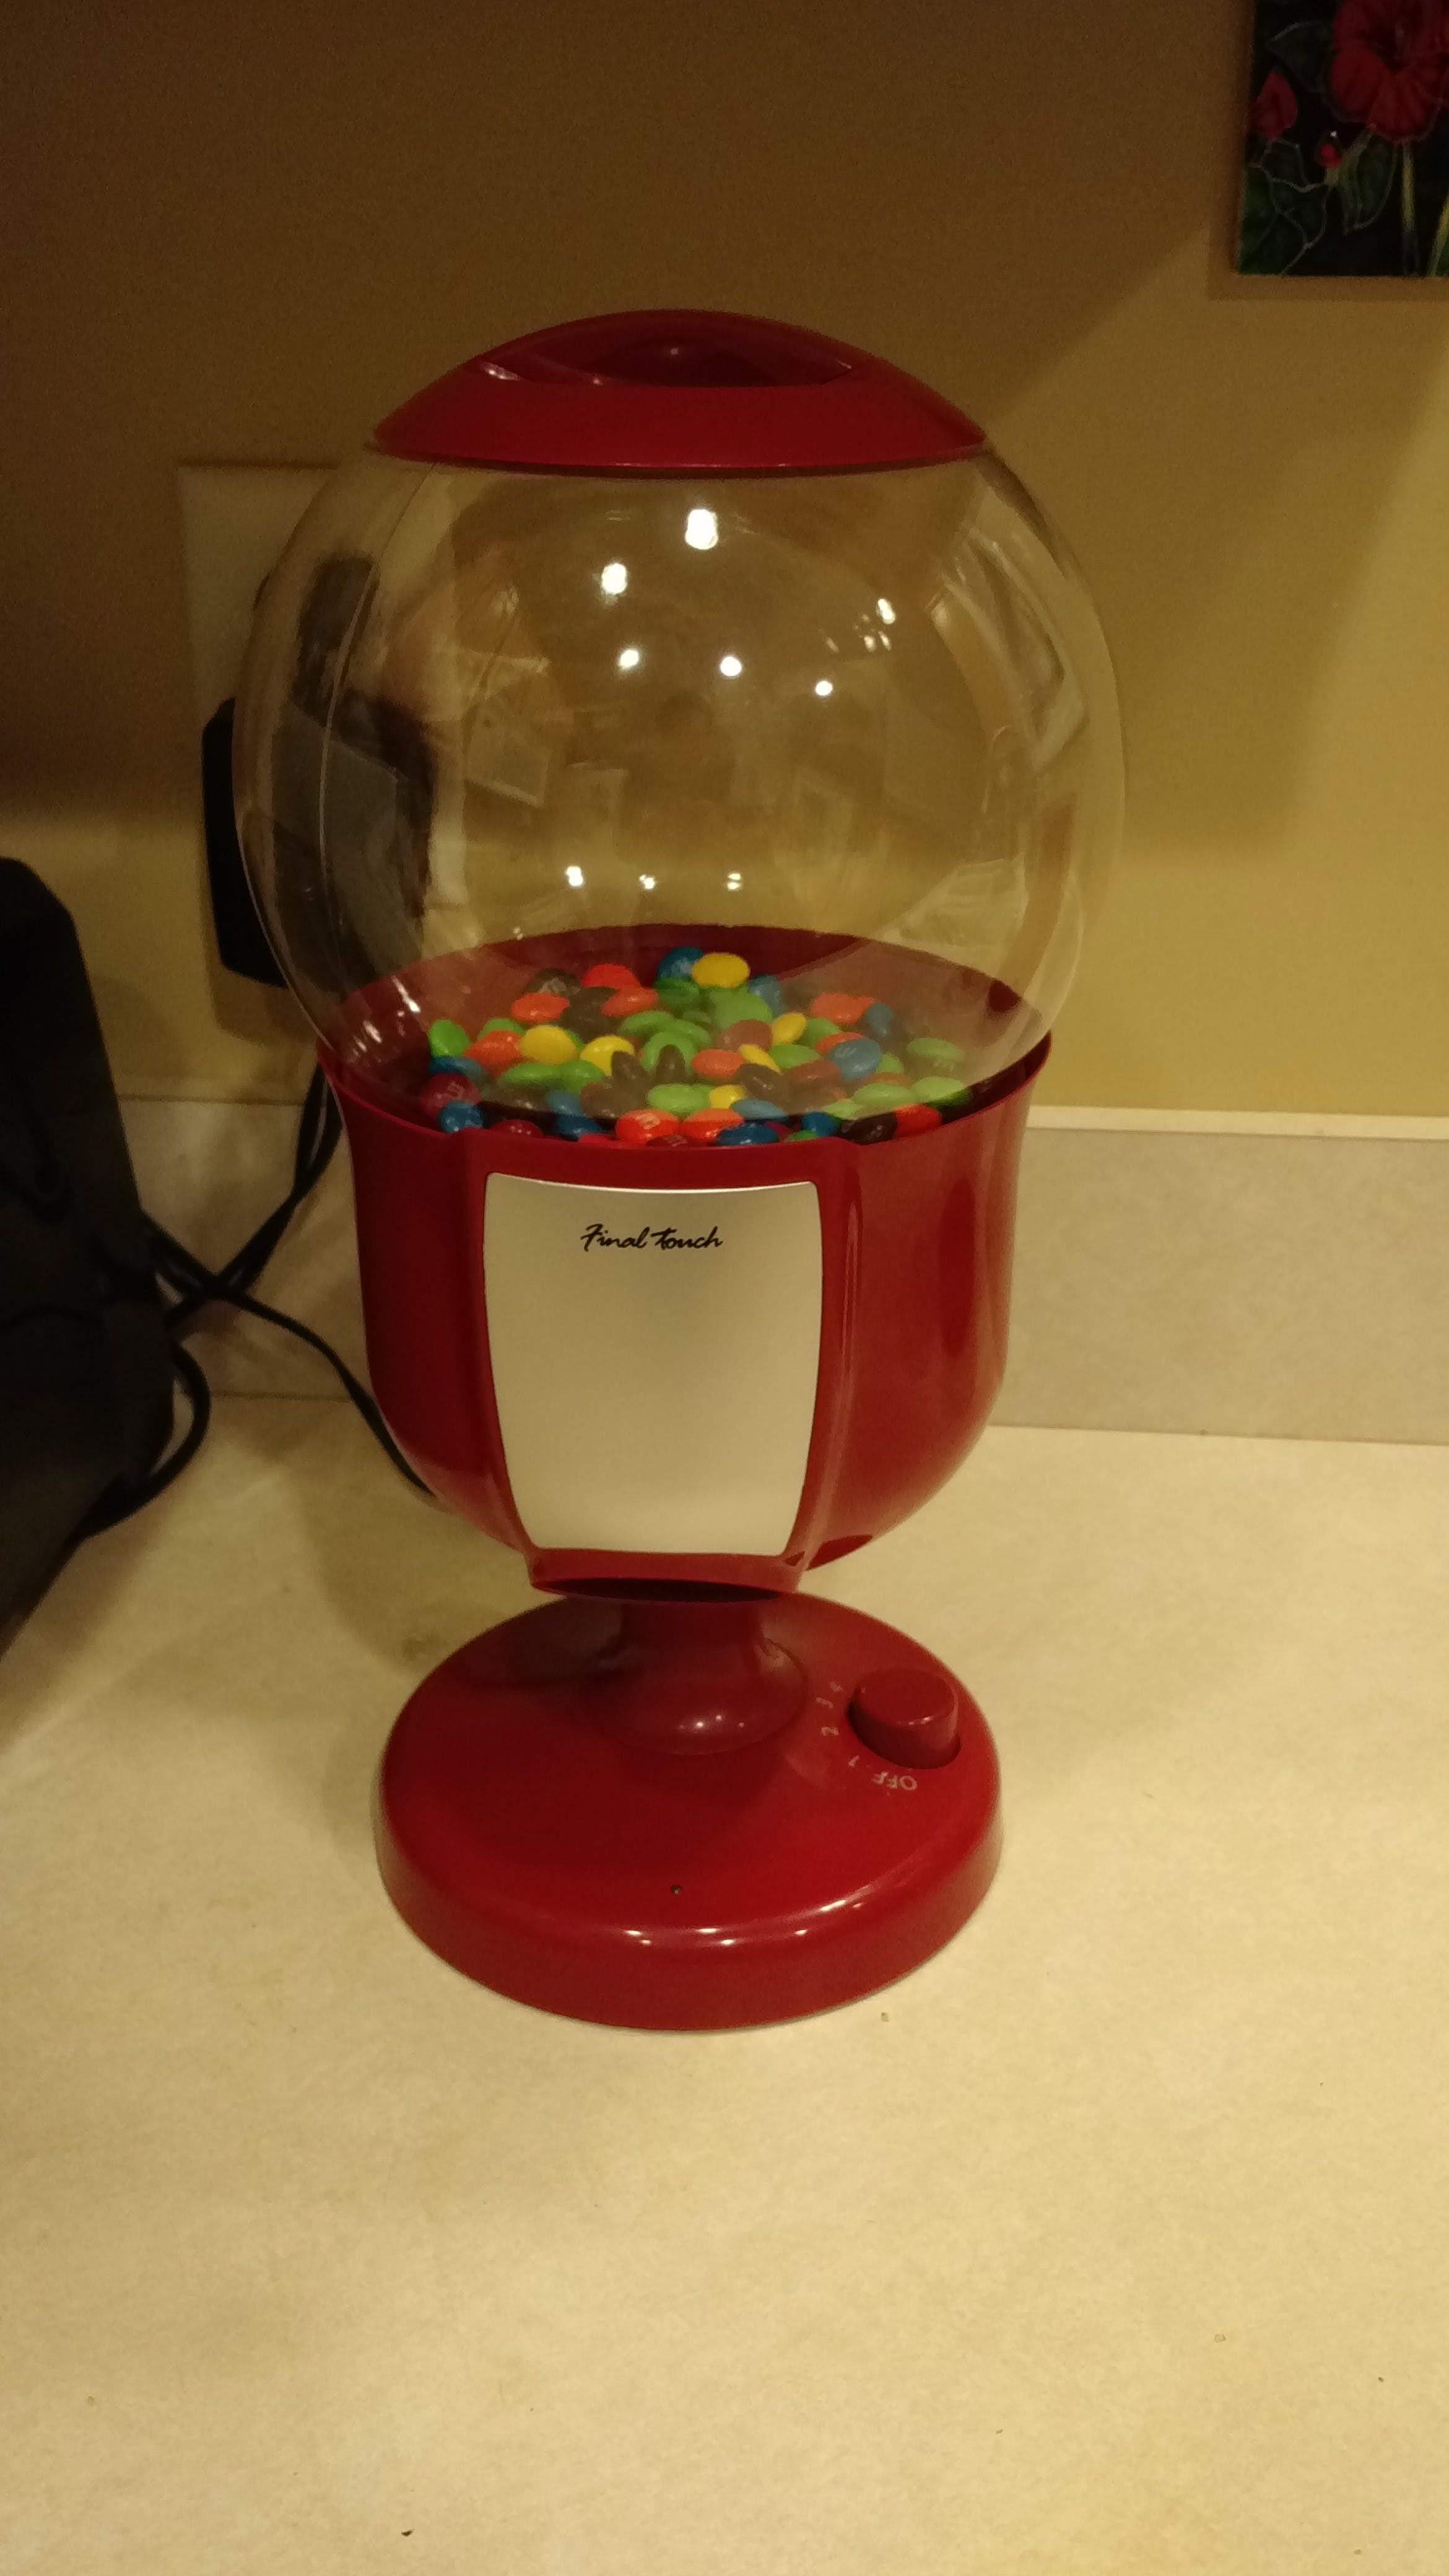 Physical Web Candy Machine